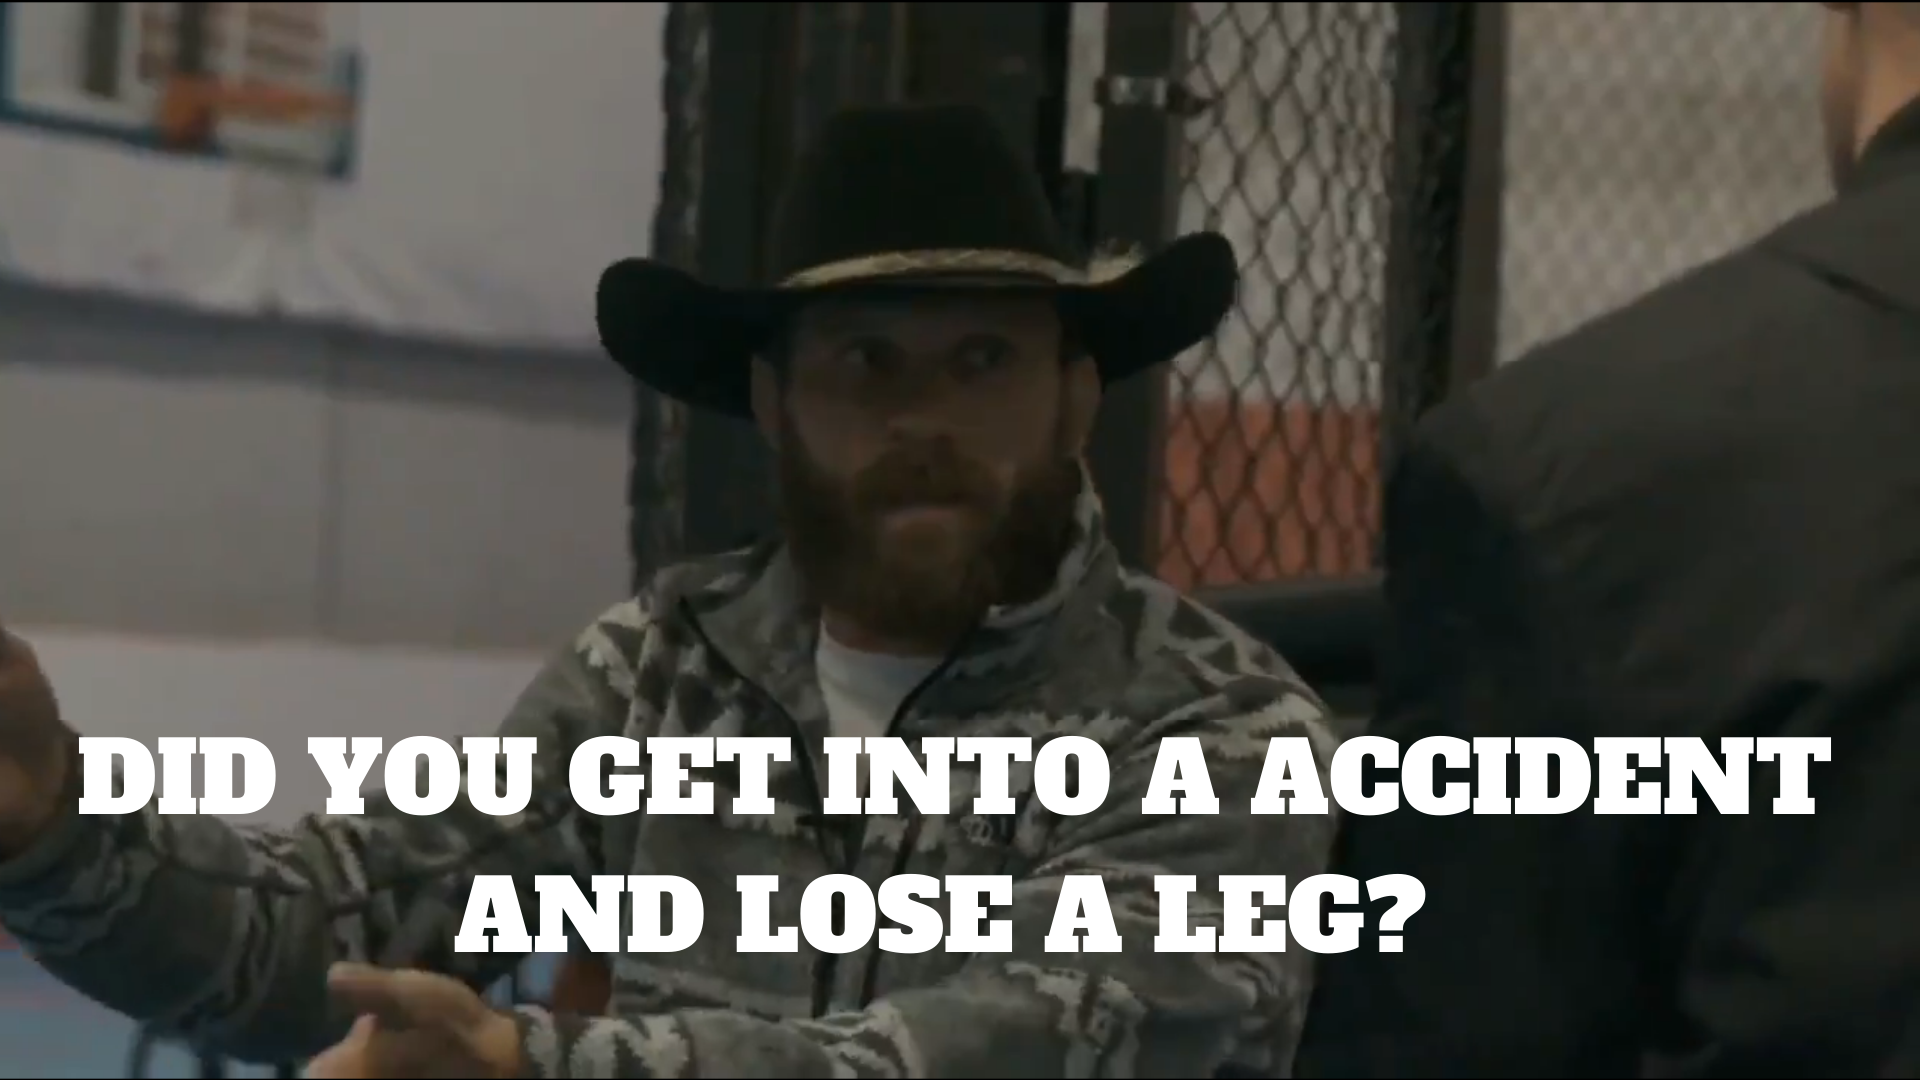 Watch: Cowboy moving motivational speech to a young MMA fighter who lost an amateur bout - cowboy